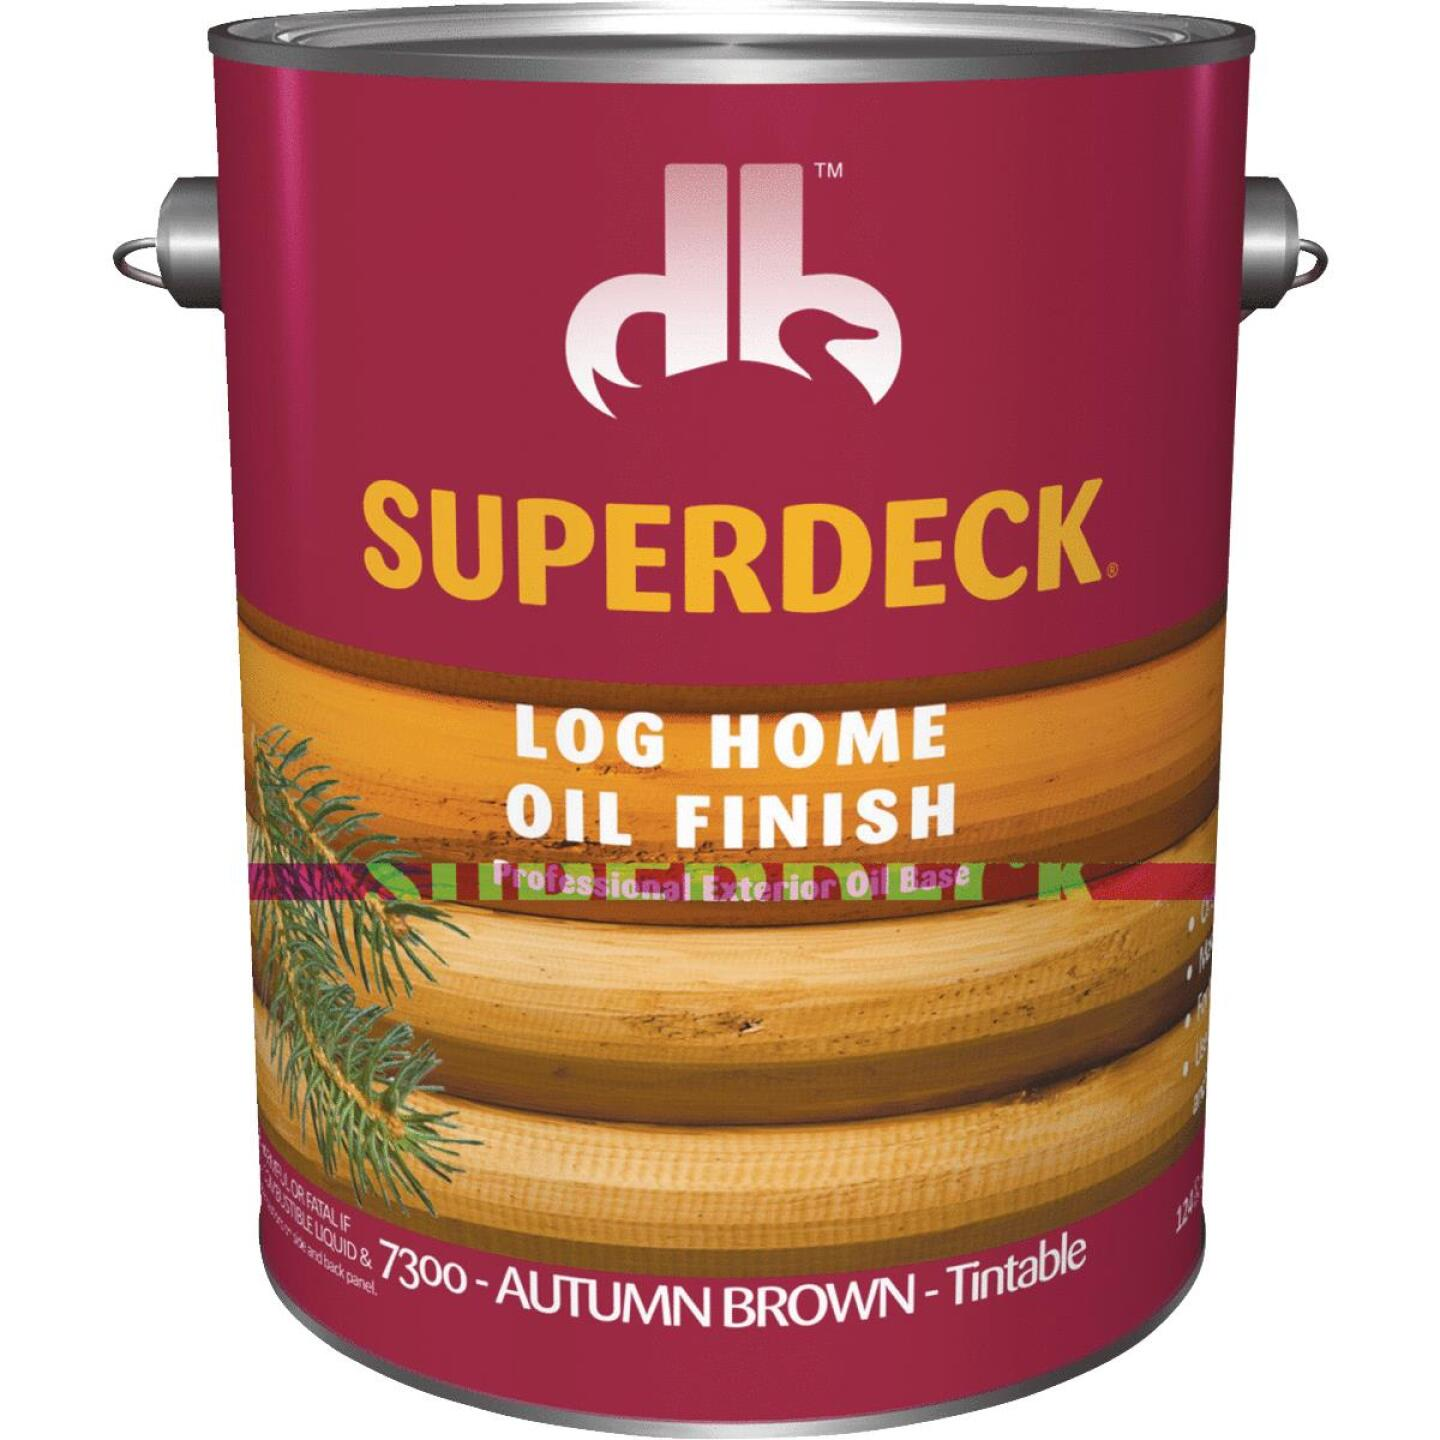 Duckback SUPERDECK VOC Translucent Log Home Oil Finish, Autumn Brown, 1 Gal. Image 1